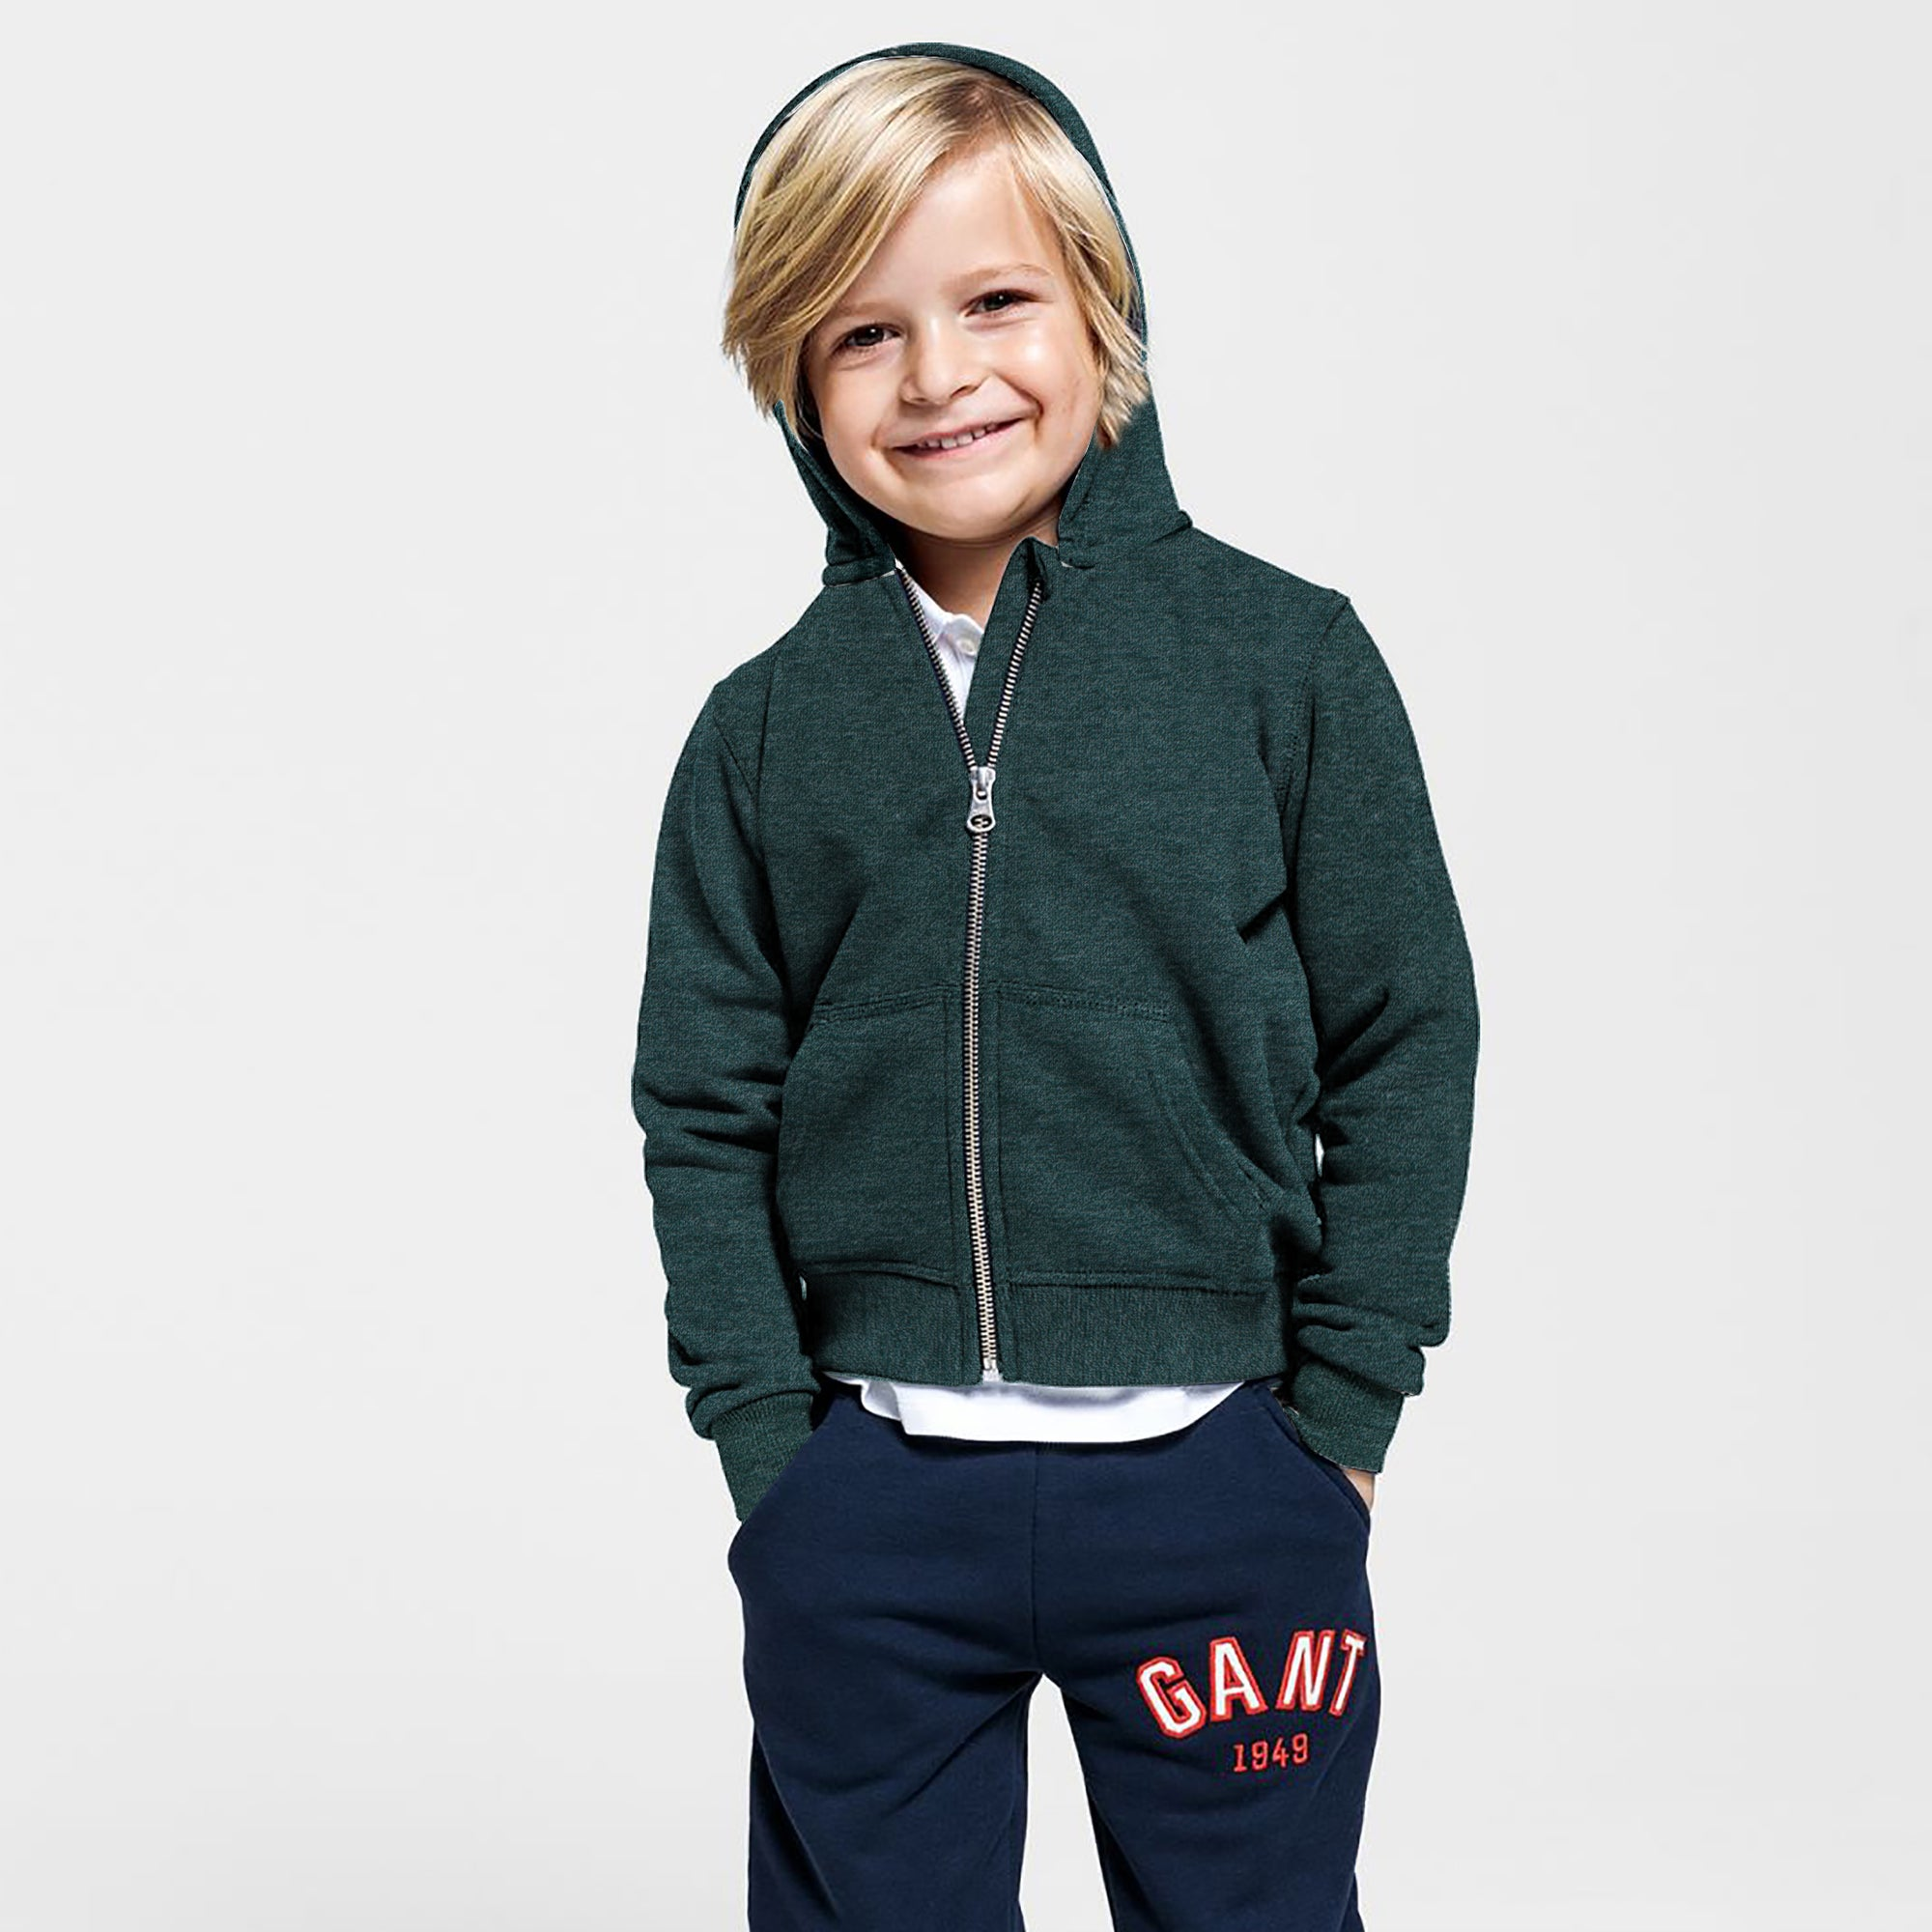 Next Fleece Zipper Hoodie For Kids-Dark Green Melange-SP860